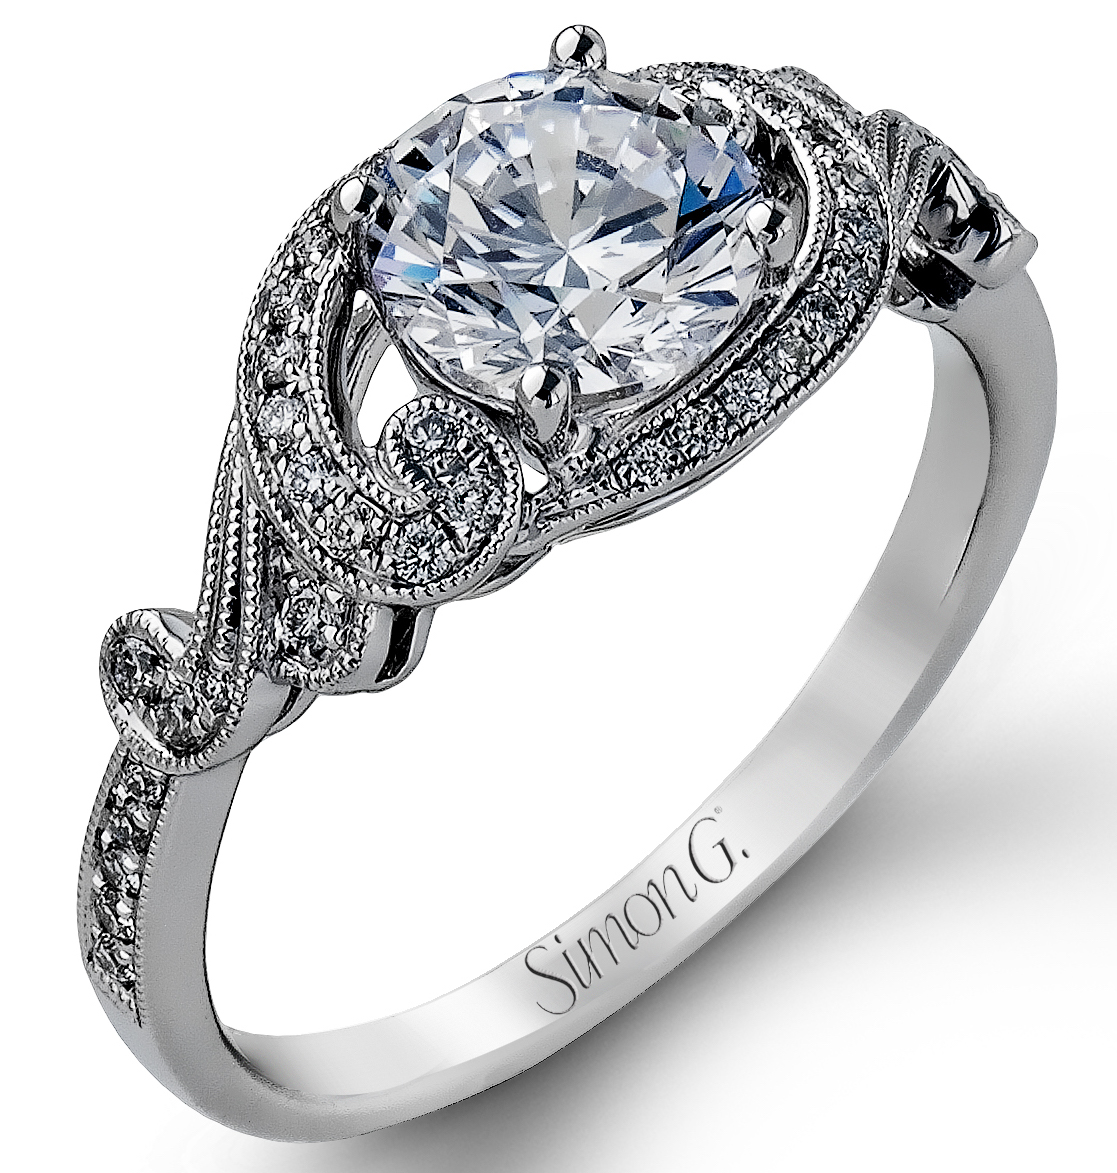 Simon G Vintage Explorer engagement ring | JCK On Your Market